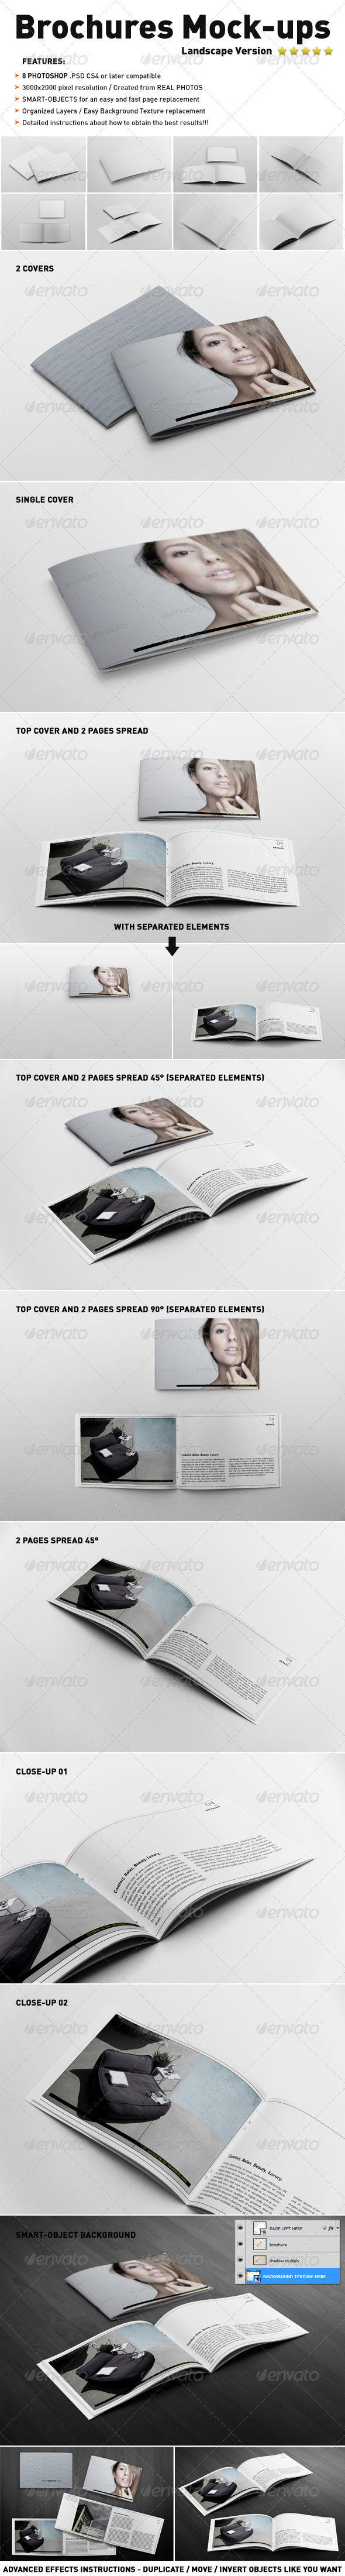 GraphicRiver Photorealistic Landscape Brochure Mock-ups 3607653